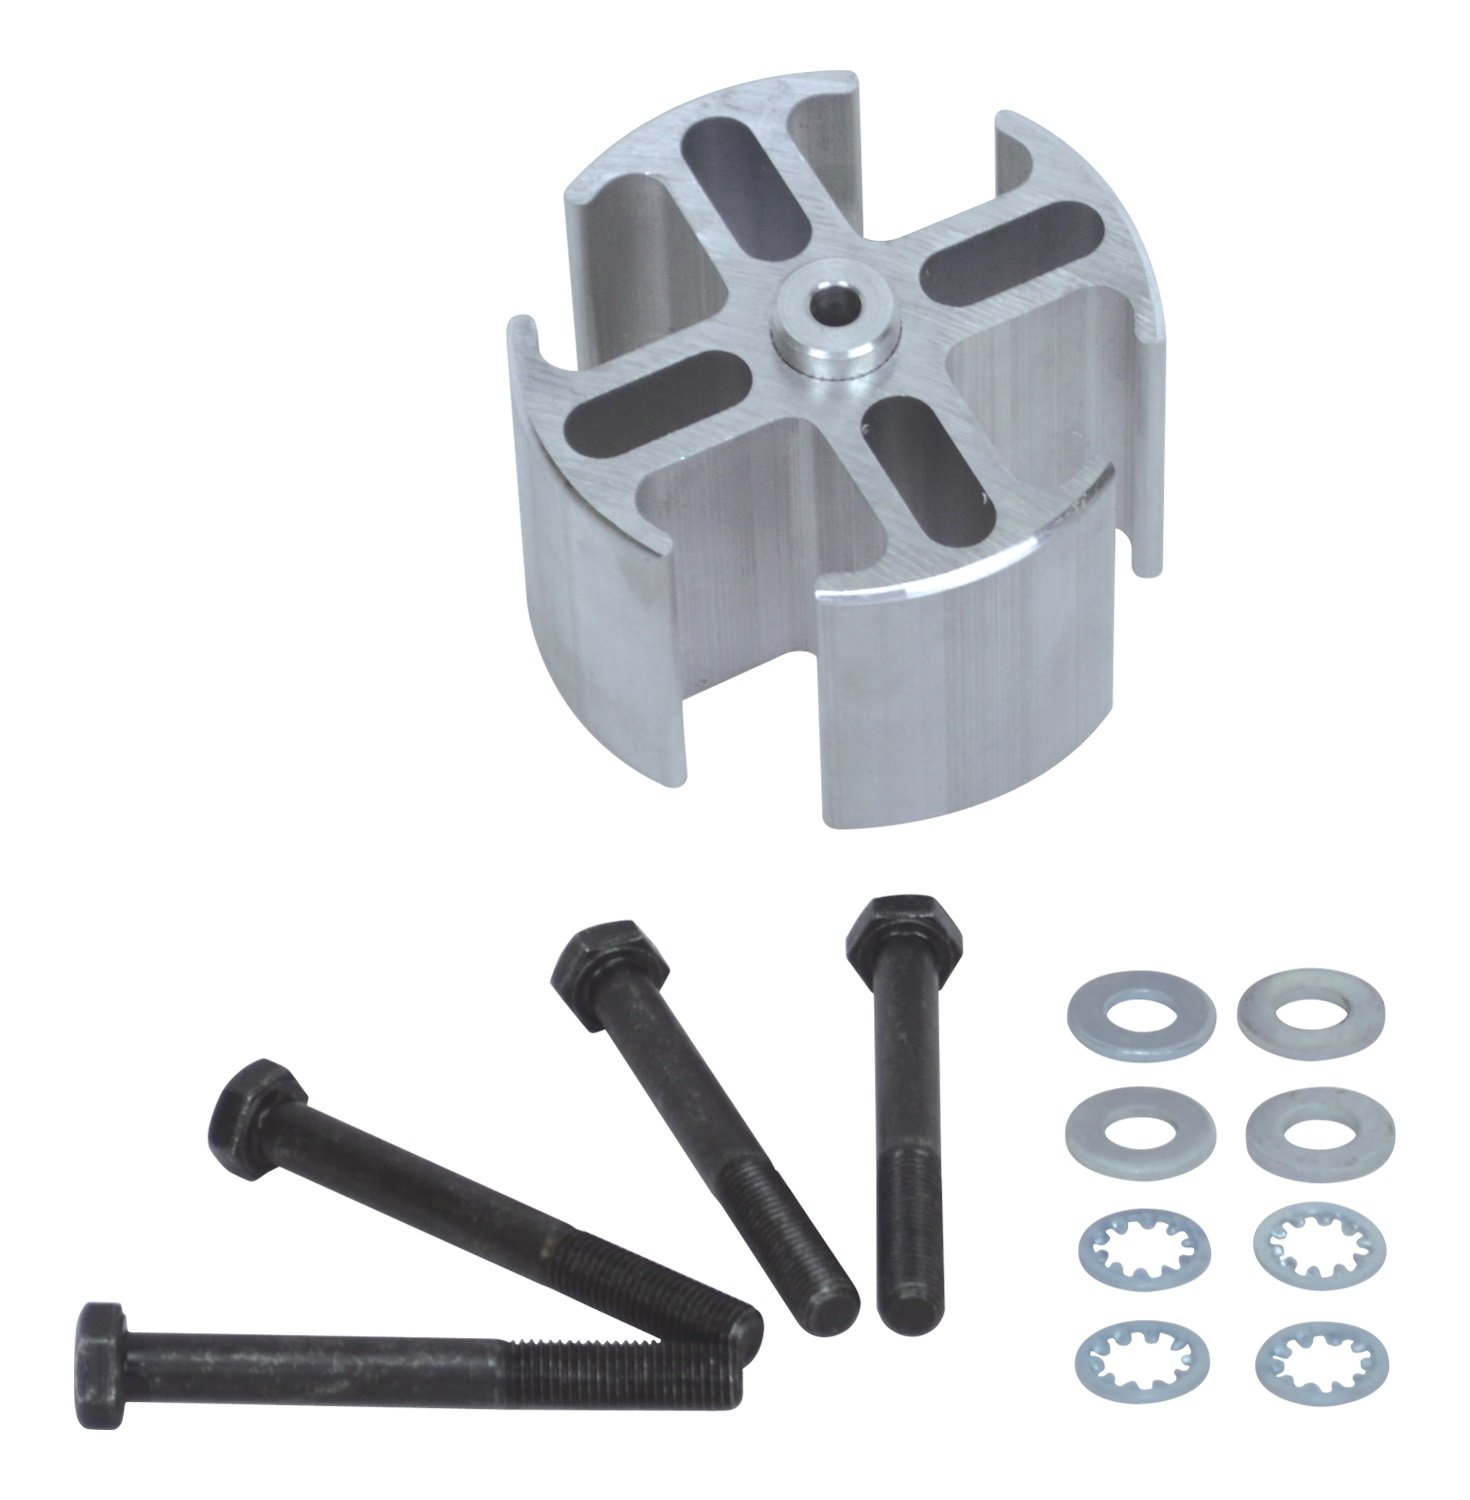 Flex-a-lite 14556 Mill Finish 2'' Fan Spacer Kit by Flex-a-lite